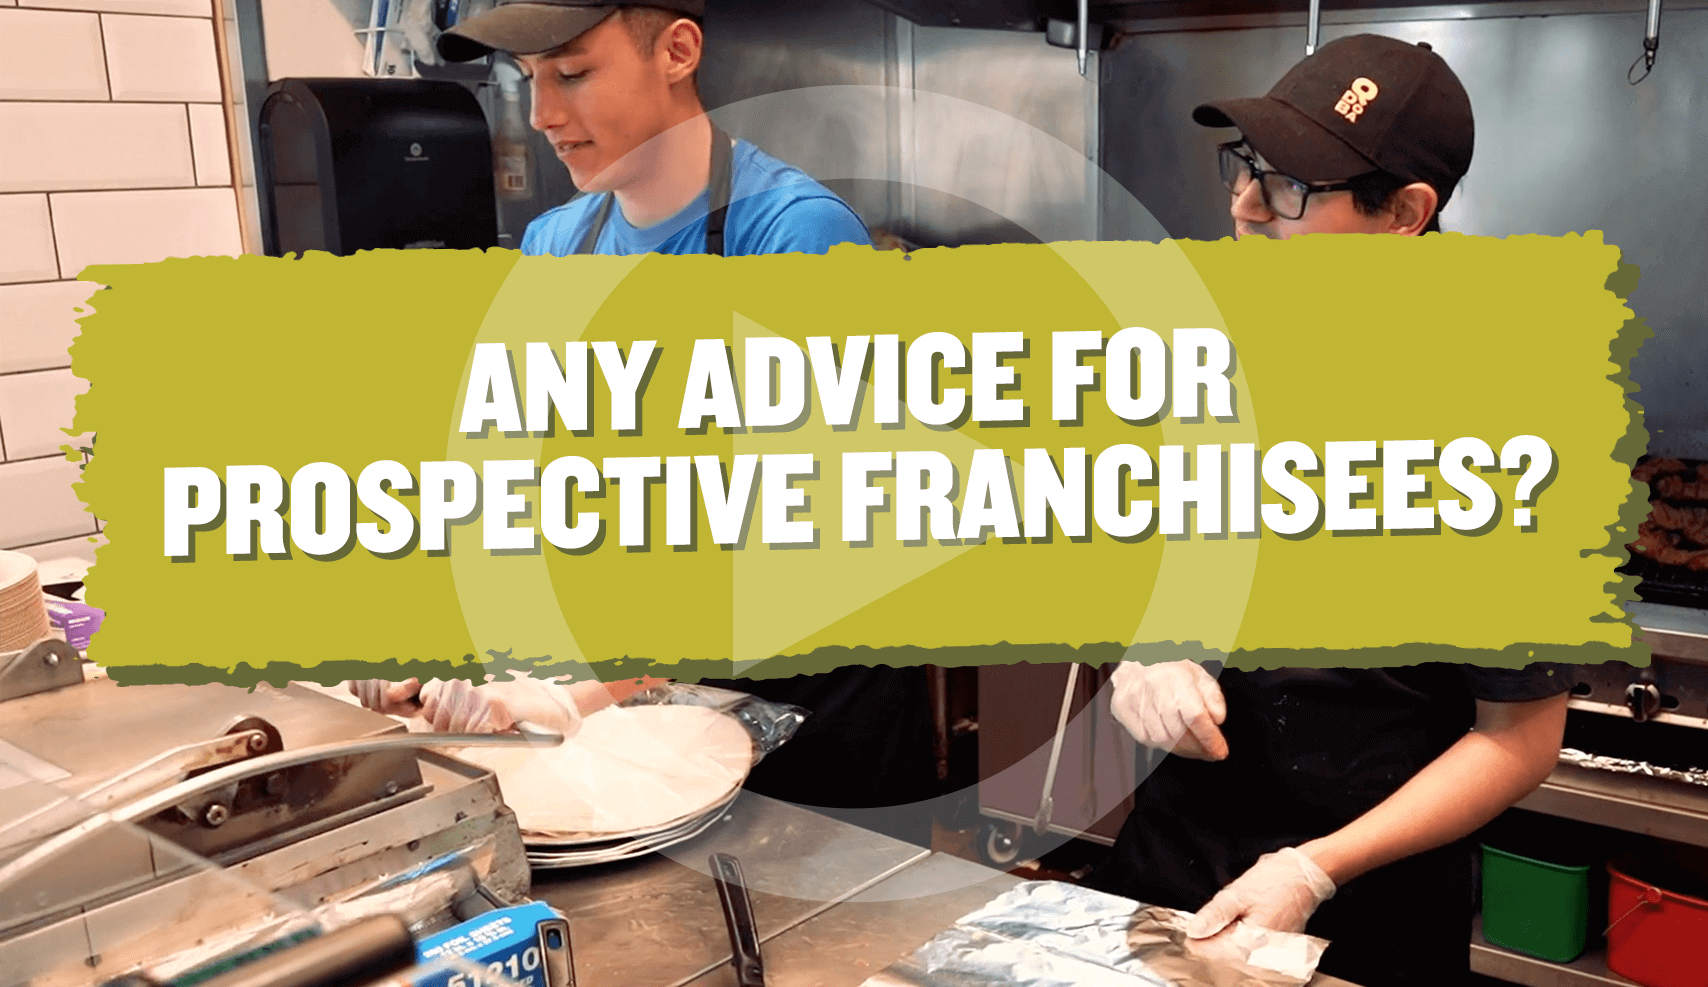 Is there any advice you can share with prospective franchisees?